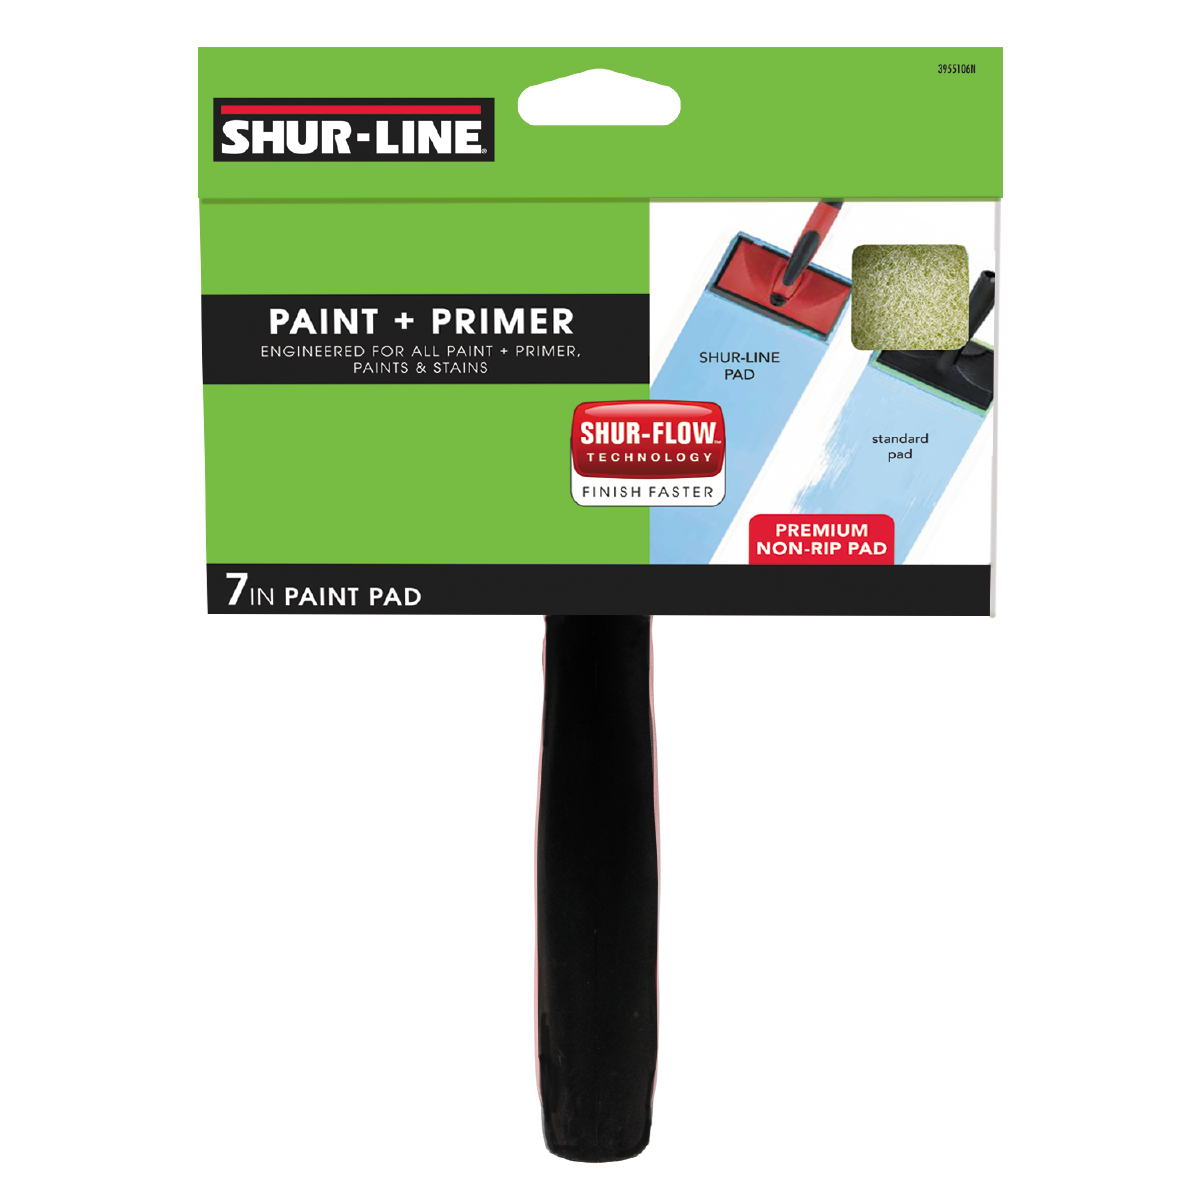 "Shur-Line 7"" Paint + Primer Paint Pad with Handle"